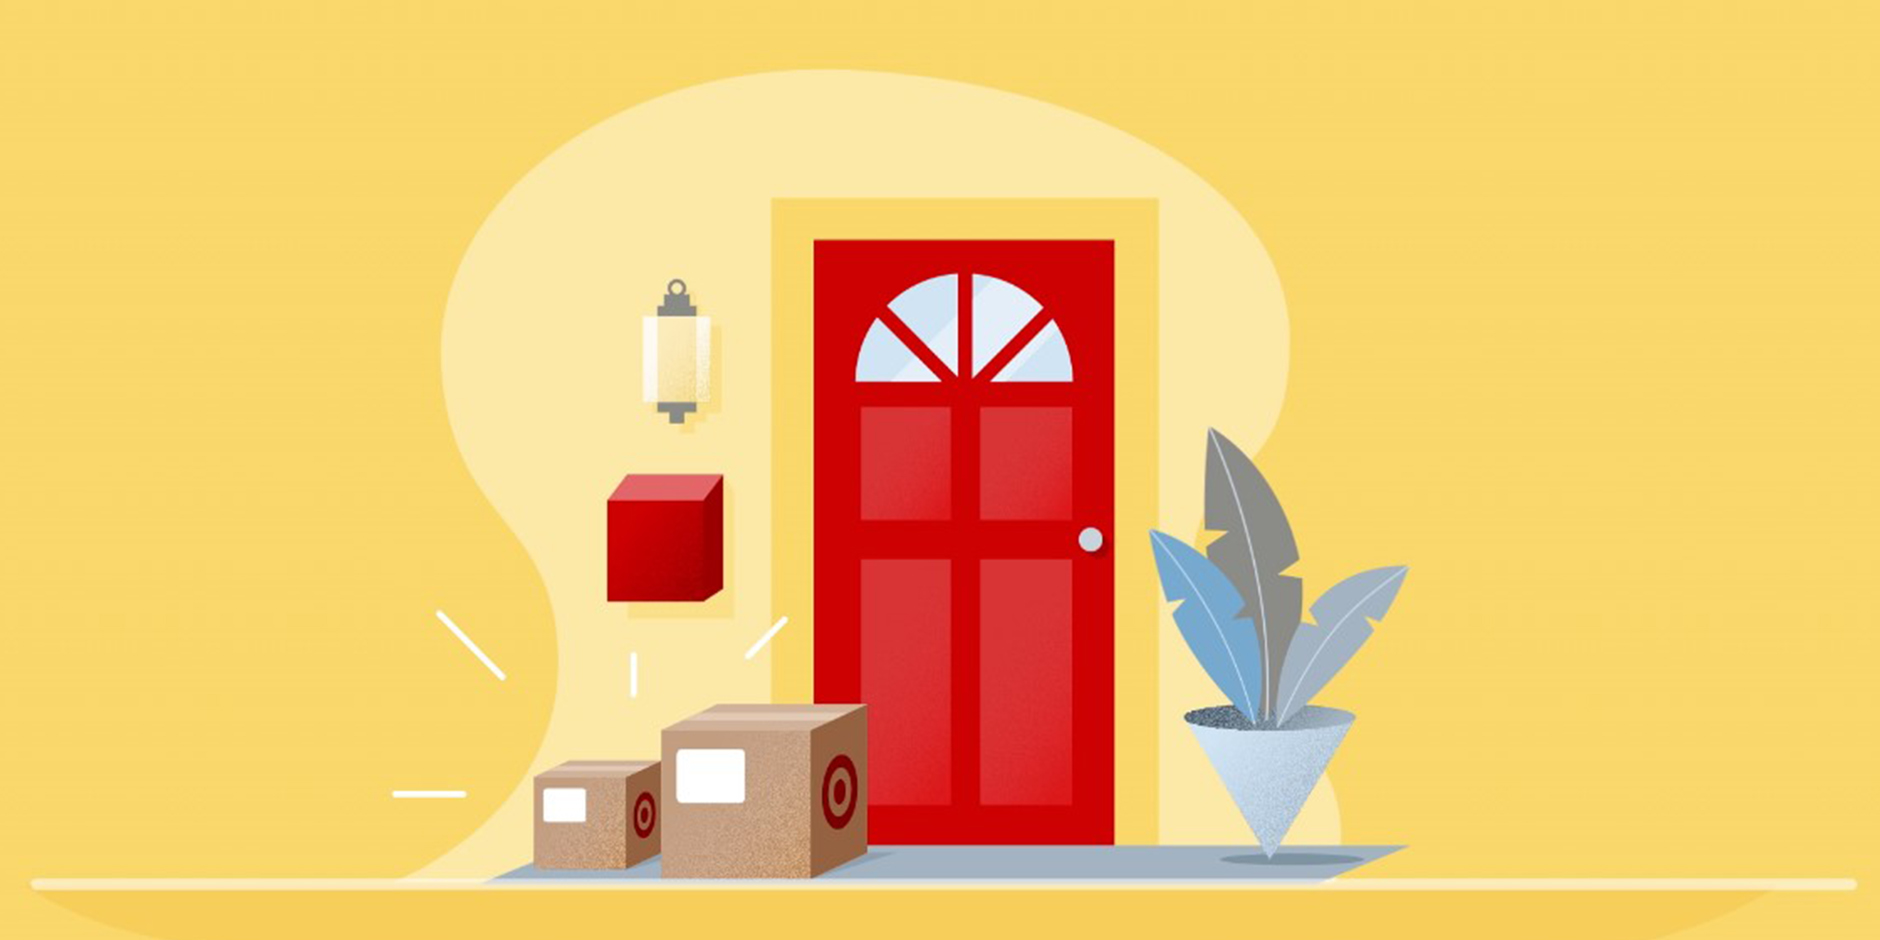 An illustration of two Target packages on a doorstep against a yellow background